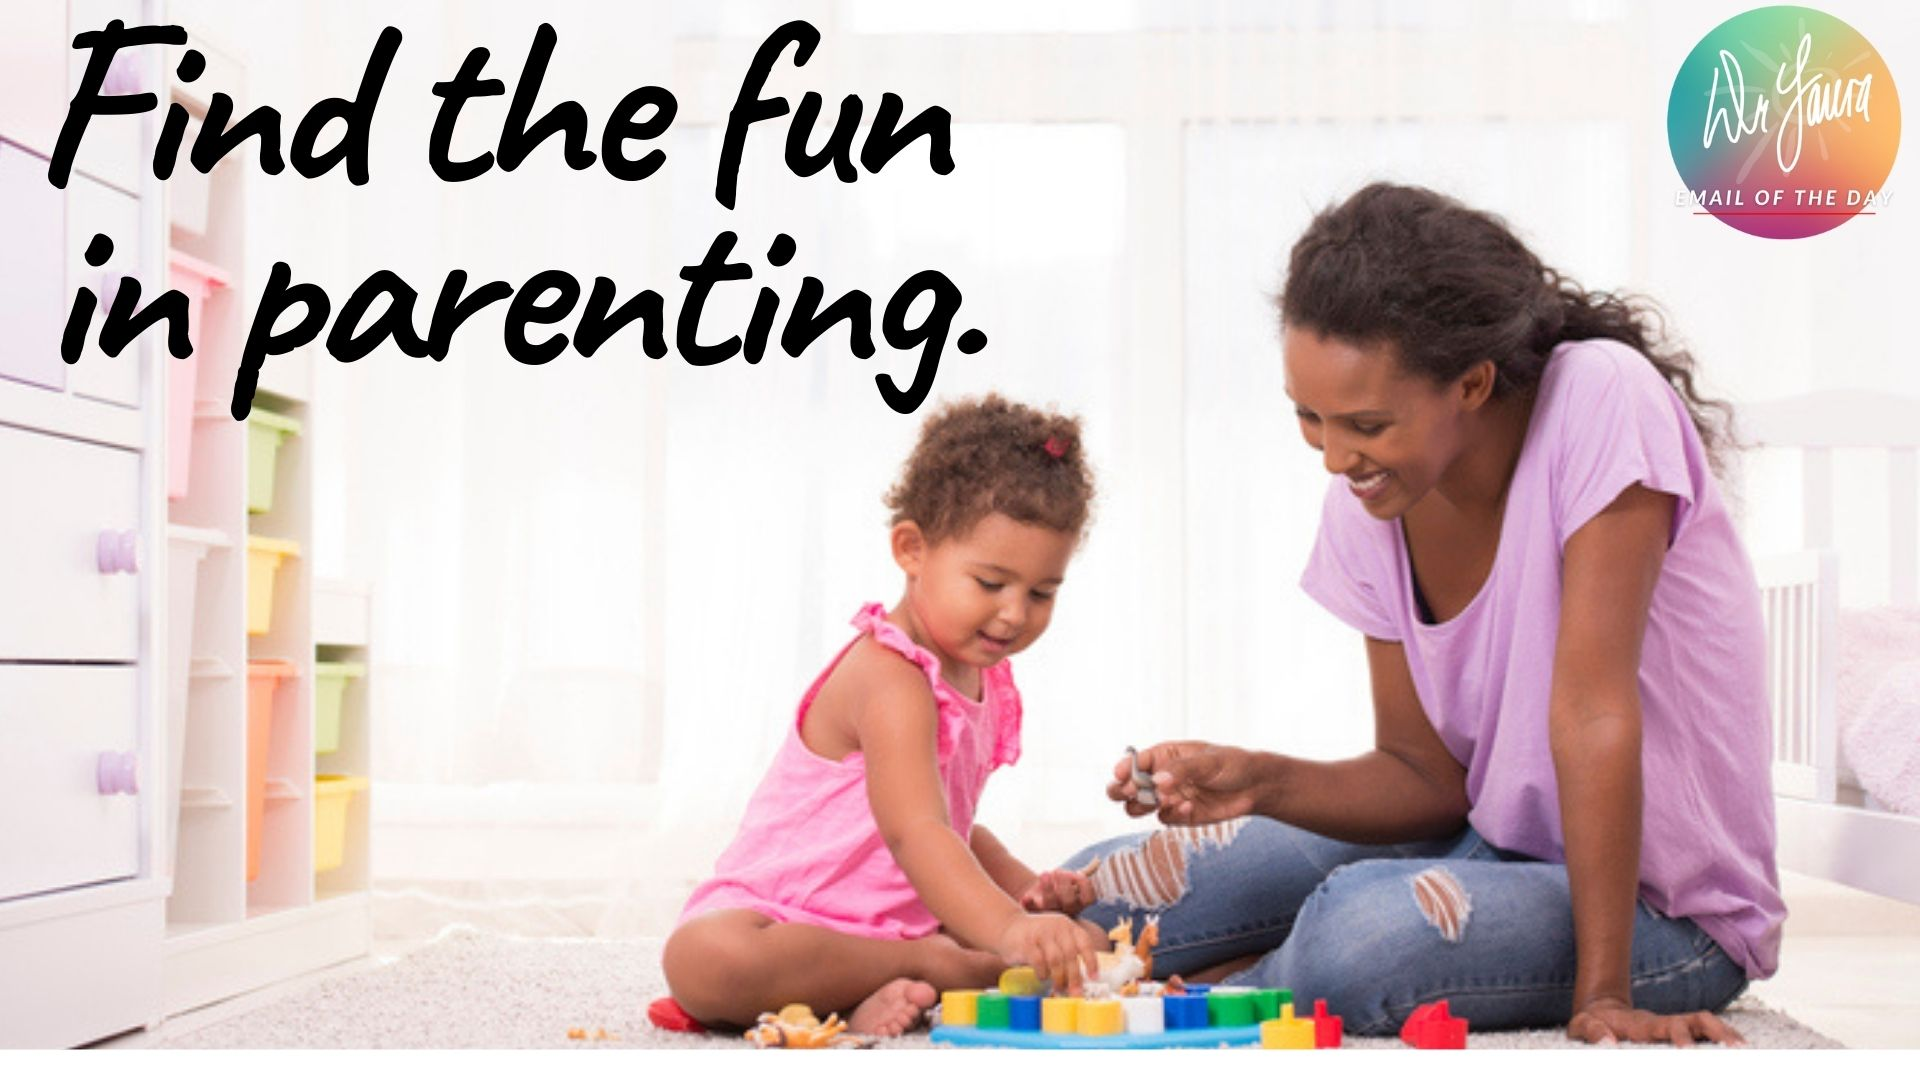 Email of the Day: Yes, I'm One of Those Types of Moms